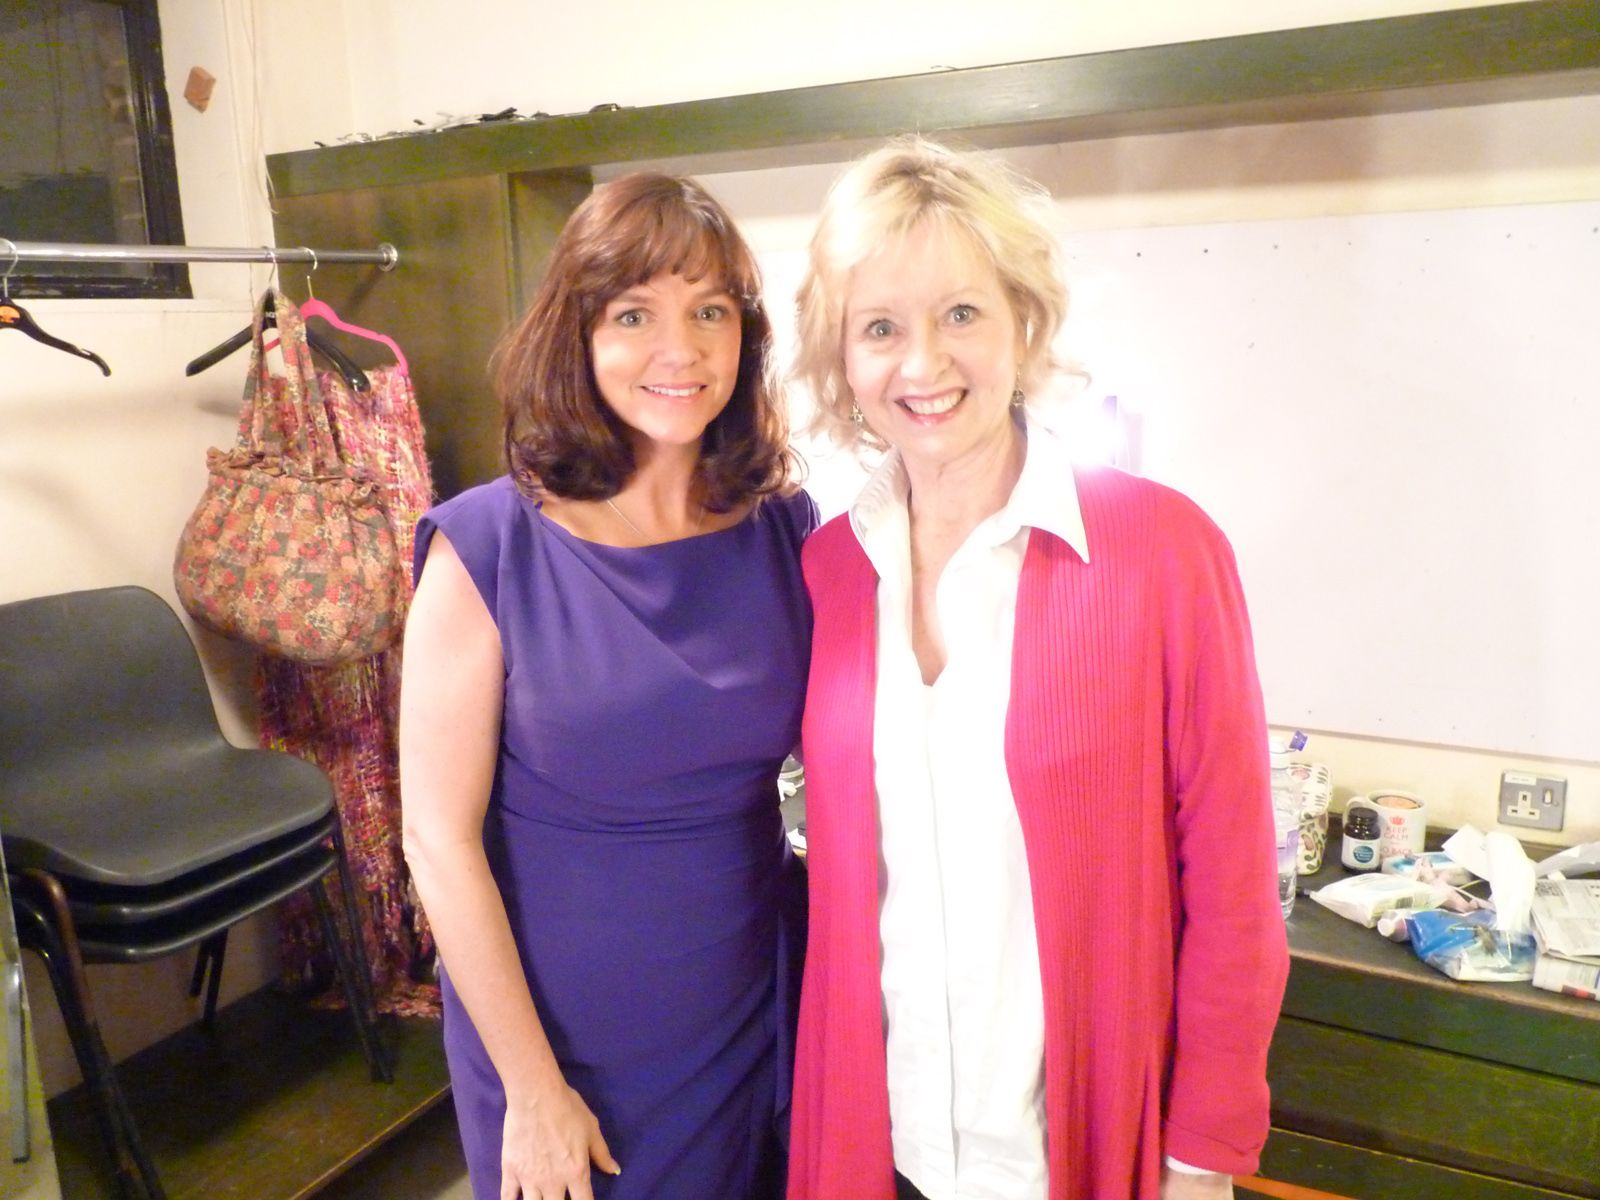 Amber Bezer (left), who starred as Ginevra in Michael Winner's film adaptation of Agatha Christie's Appointment with Death, met actress Liza Goddard (right) after last night's performance of Agatha Christie's Go Back For Murder #theatre #drama #showbusiness #actress #LizaGoddard #AmberBezer #AgathaChristie #murder #mystery #whodunnit